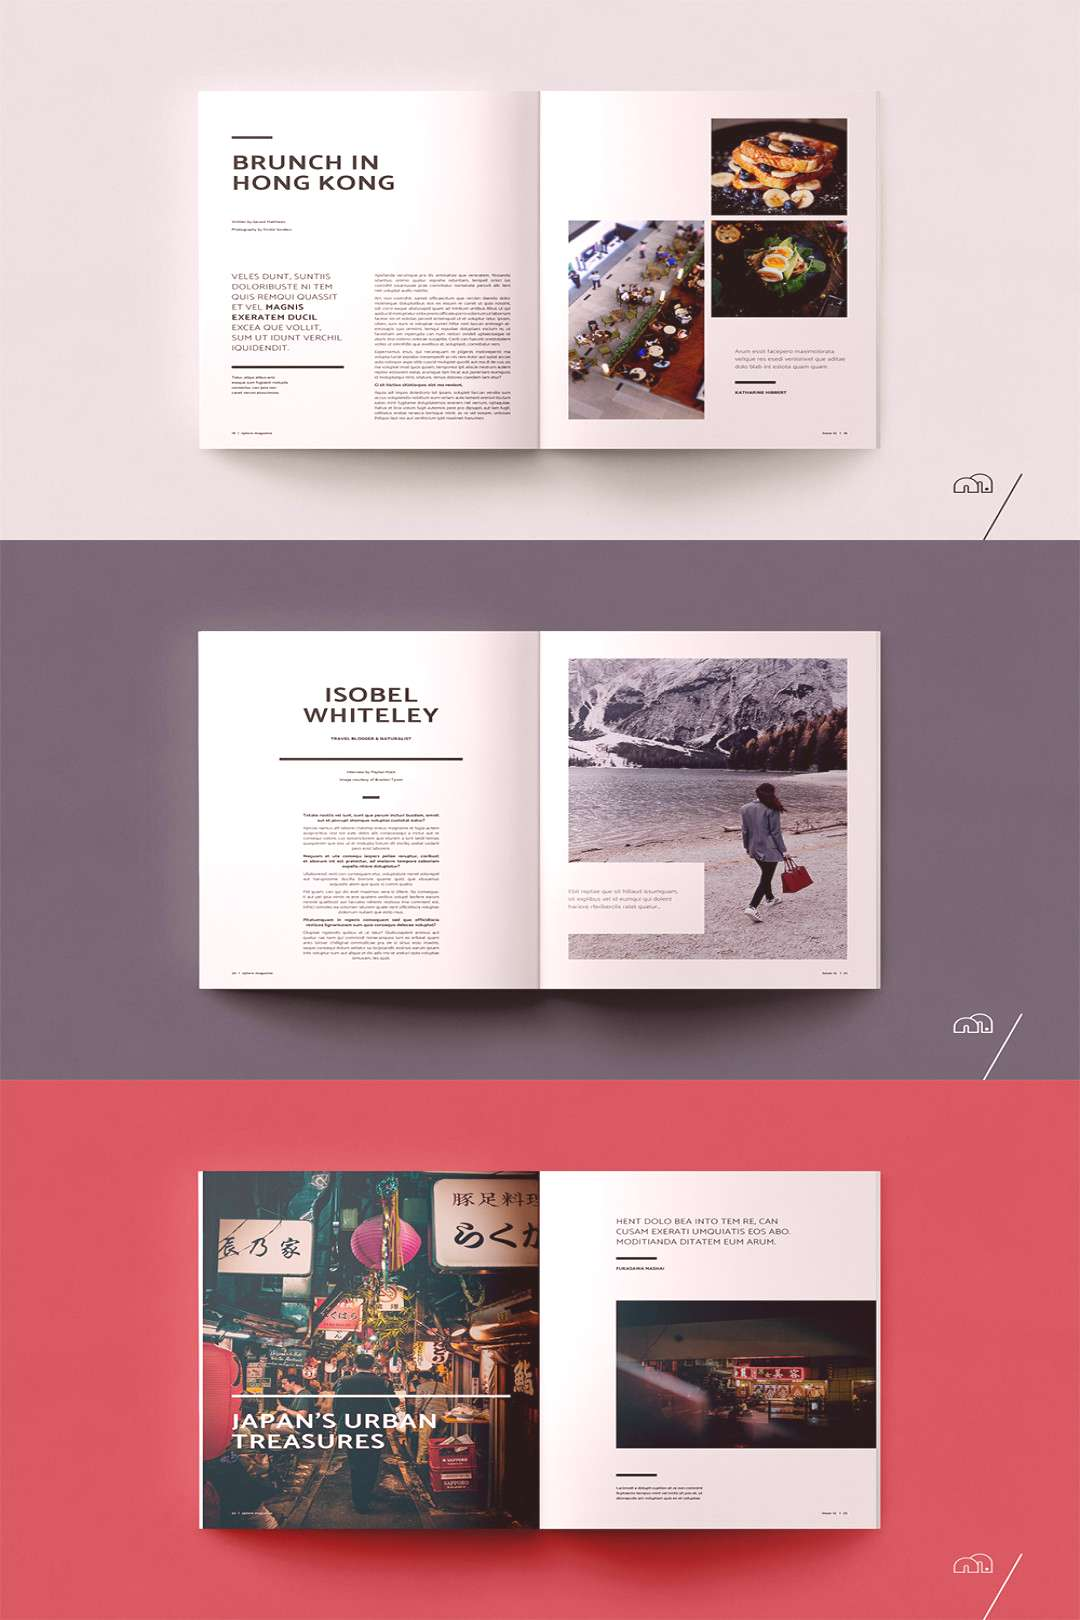 Travel Magazine - Xplore  XPLORE Travel Magazine is a professional, modern template with a focus on